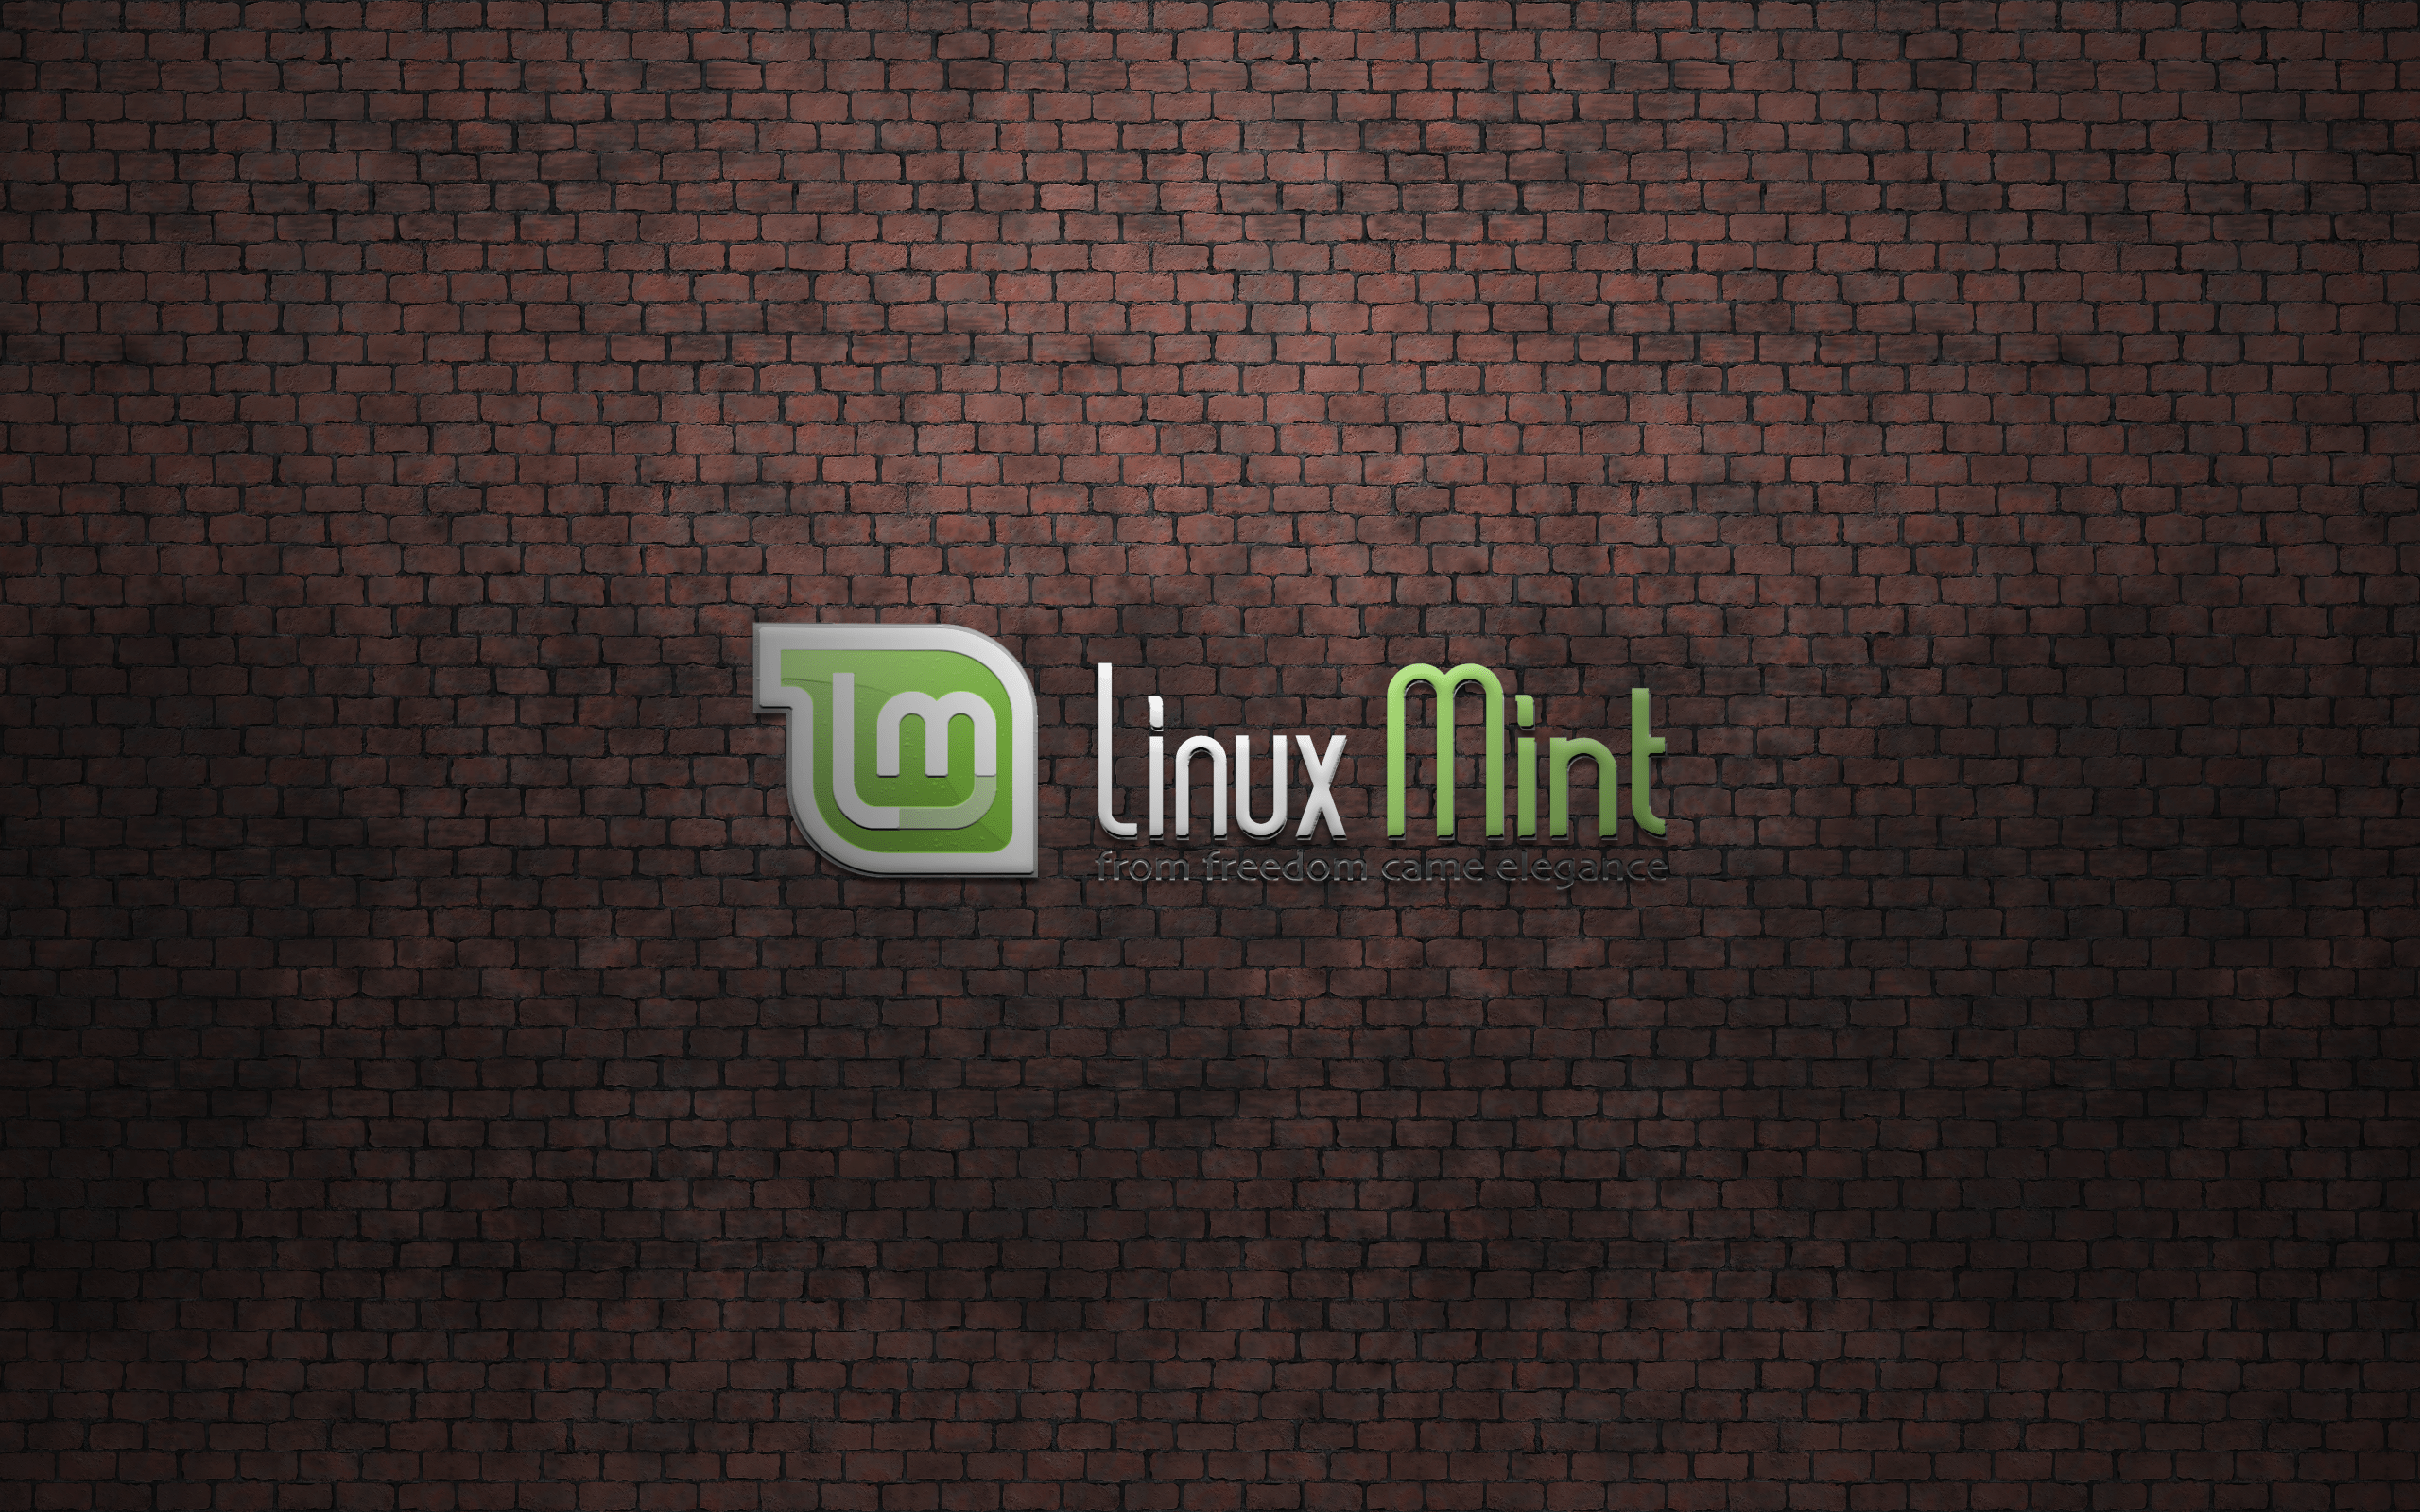 Download Ubuntu Wallpapers Hd Linux Mint 171 Awesome Wallpapers